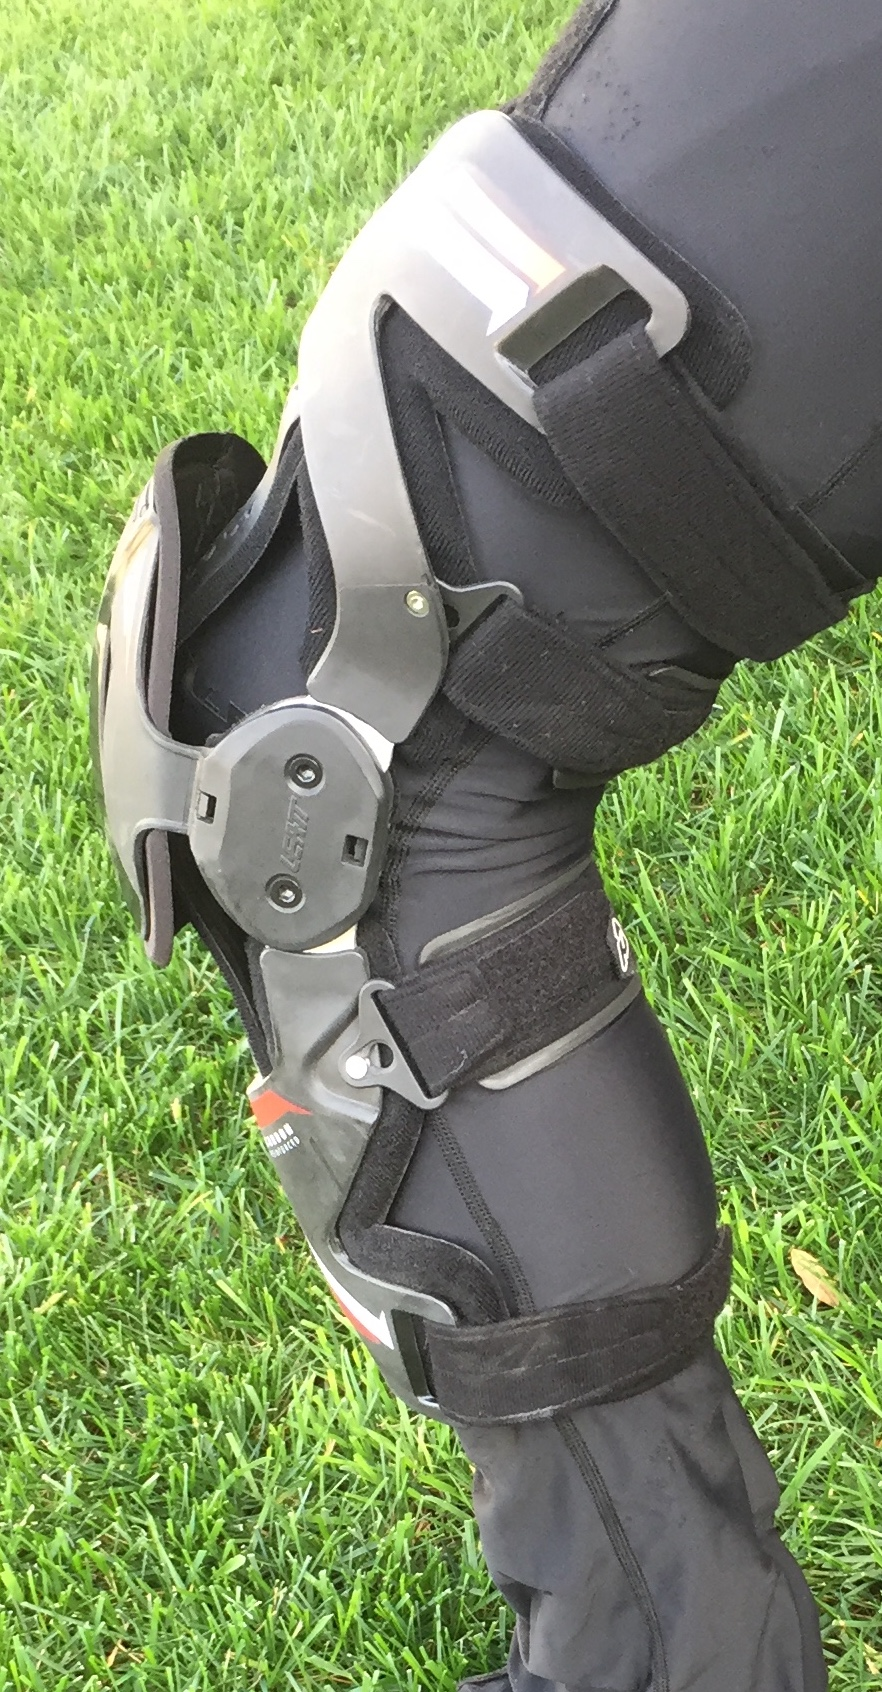 08e16e986ce3 ... just a few players in the knee brace game, but now thankfully for us  consumers, there are multiple high end options on the market like the Leatt  X Frame ...